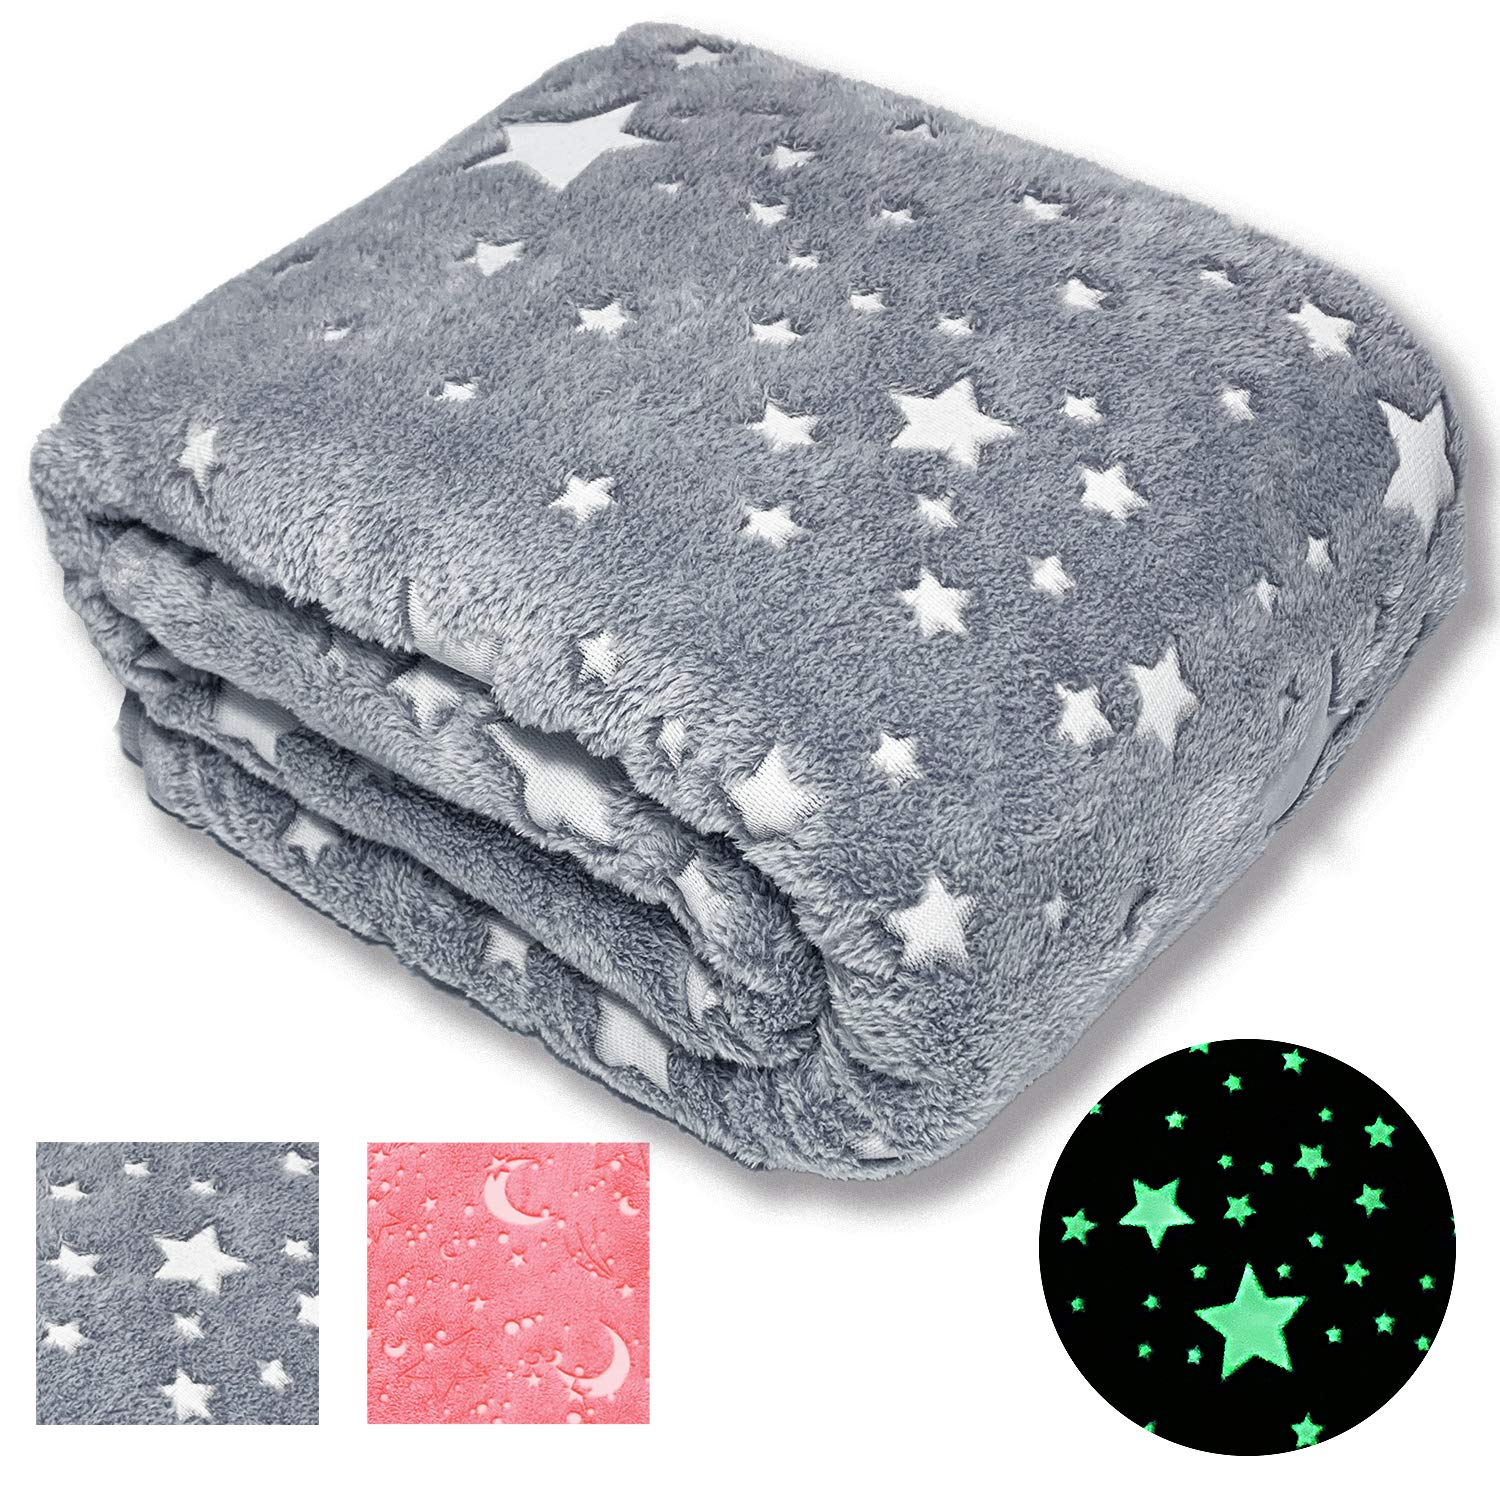 Forestar Glow in The Dark Throw Blanket | Top Birthday Gift for Kids Boys Girls Toddlers | Premium Super Soft Fuzzy Fluffy Plush Furry Throw Blanket (50'' x 70'' Gray)